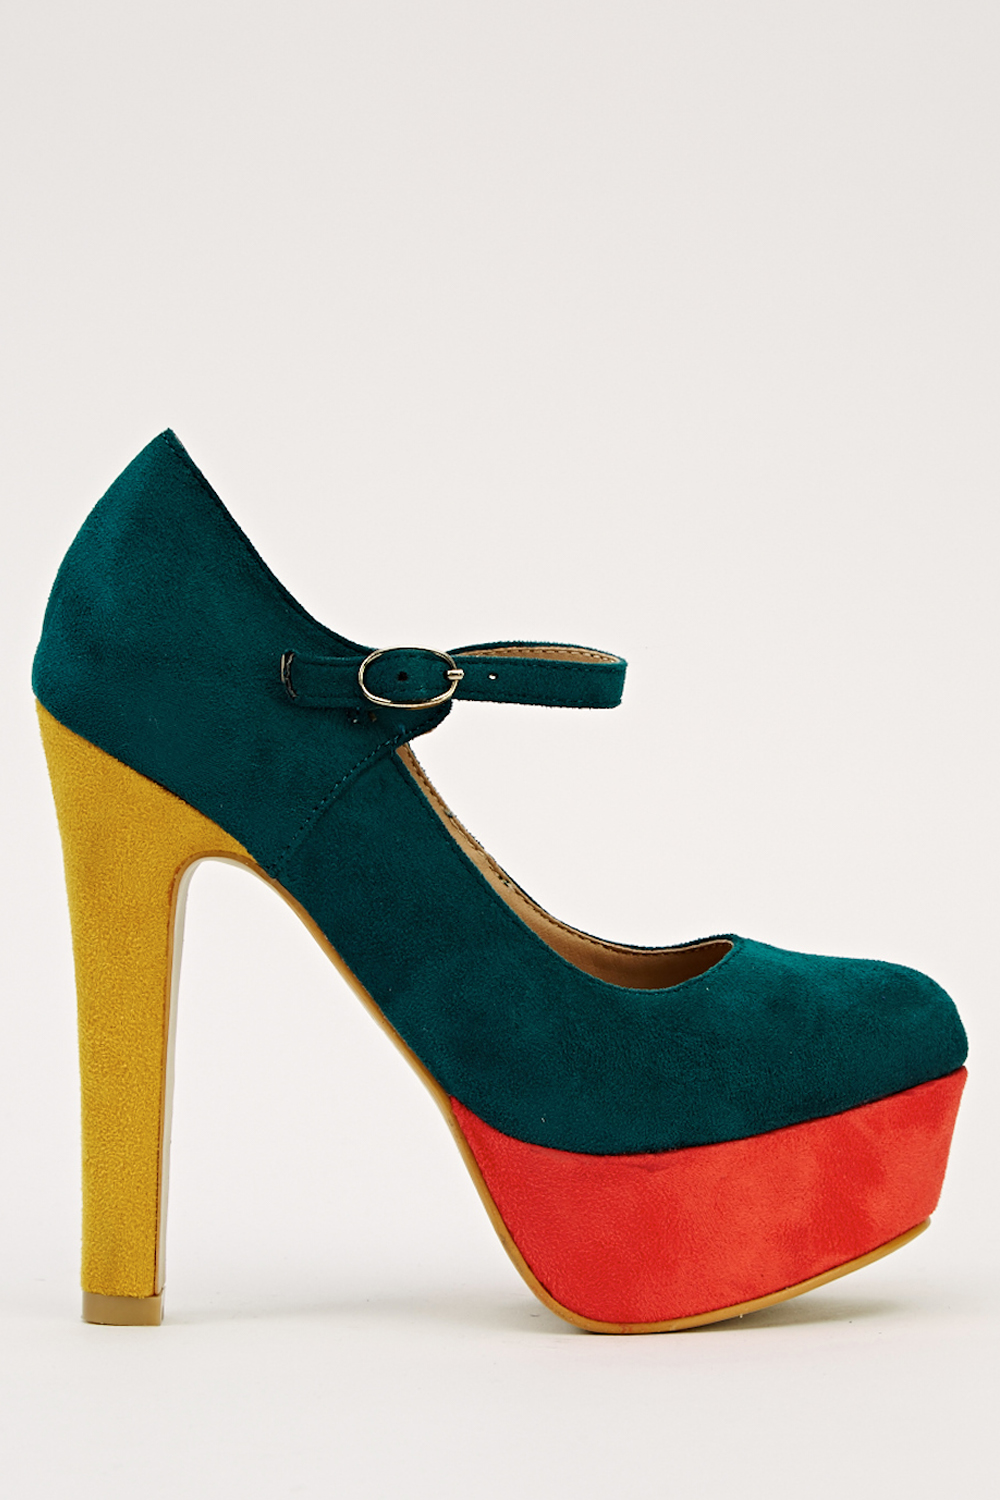 Multi Tone Buckle Strap Heel Shoes Green L Red Yellow